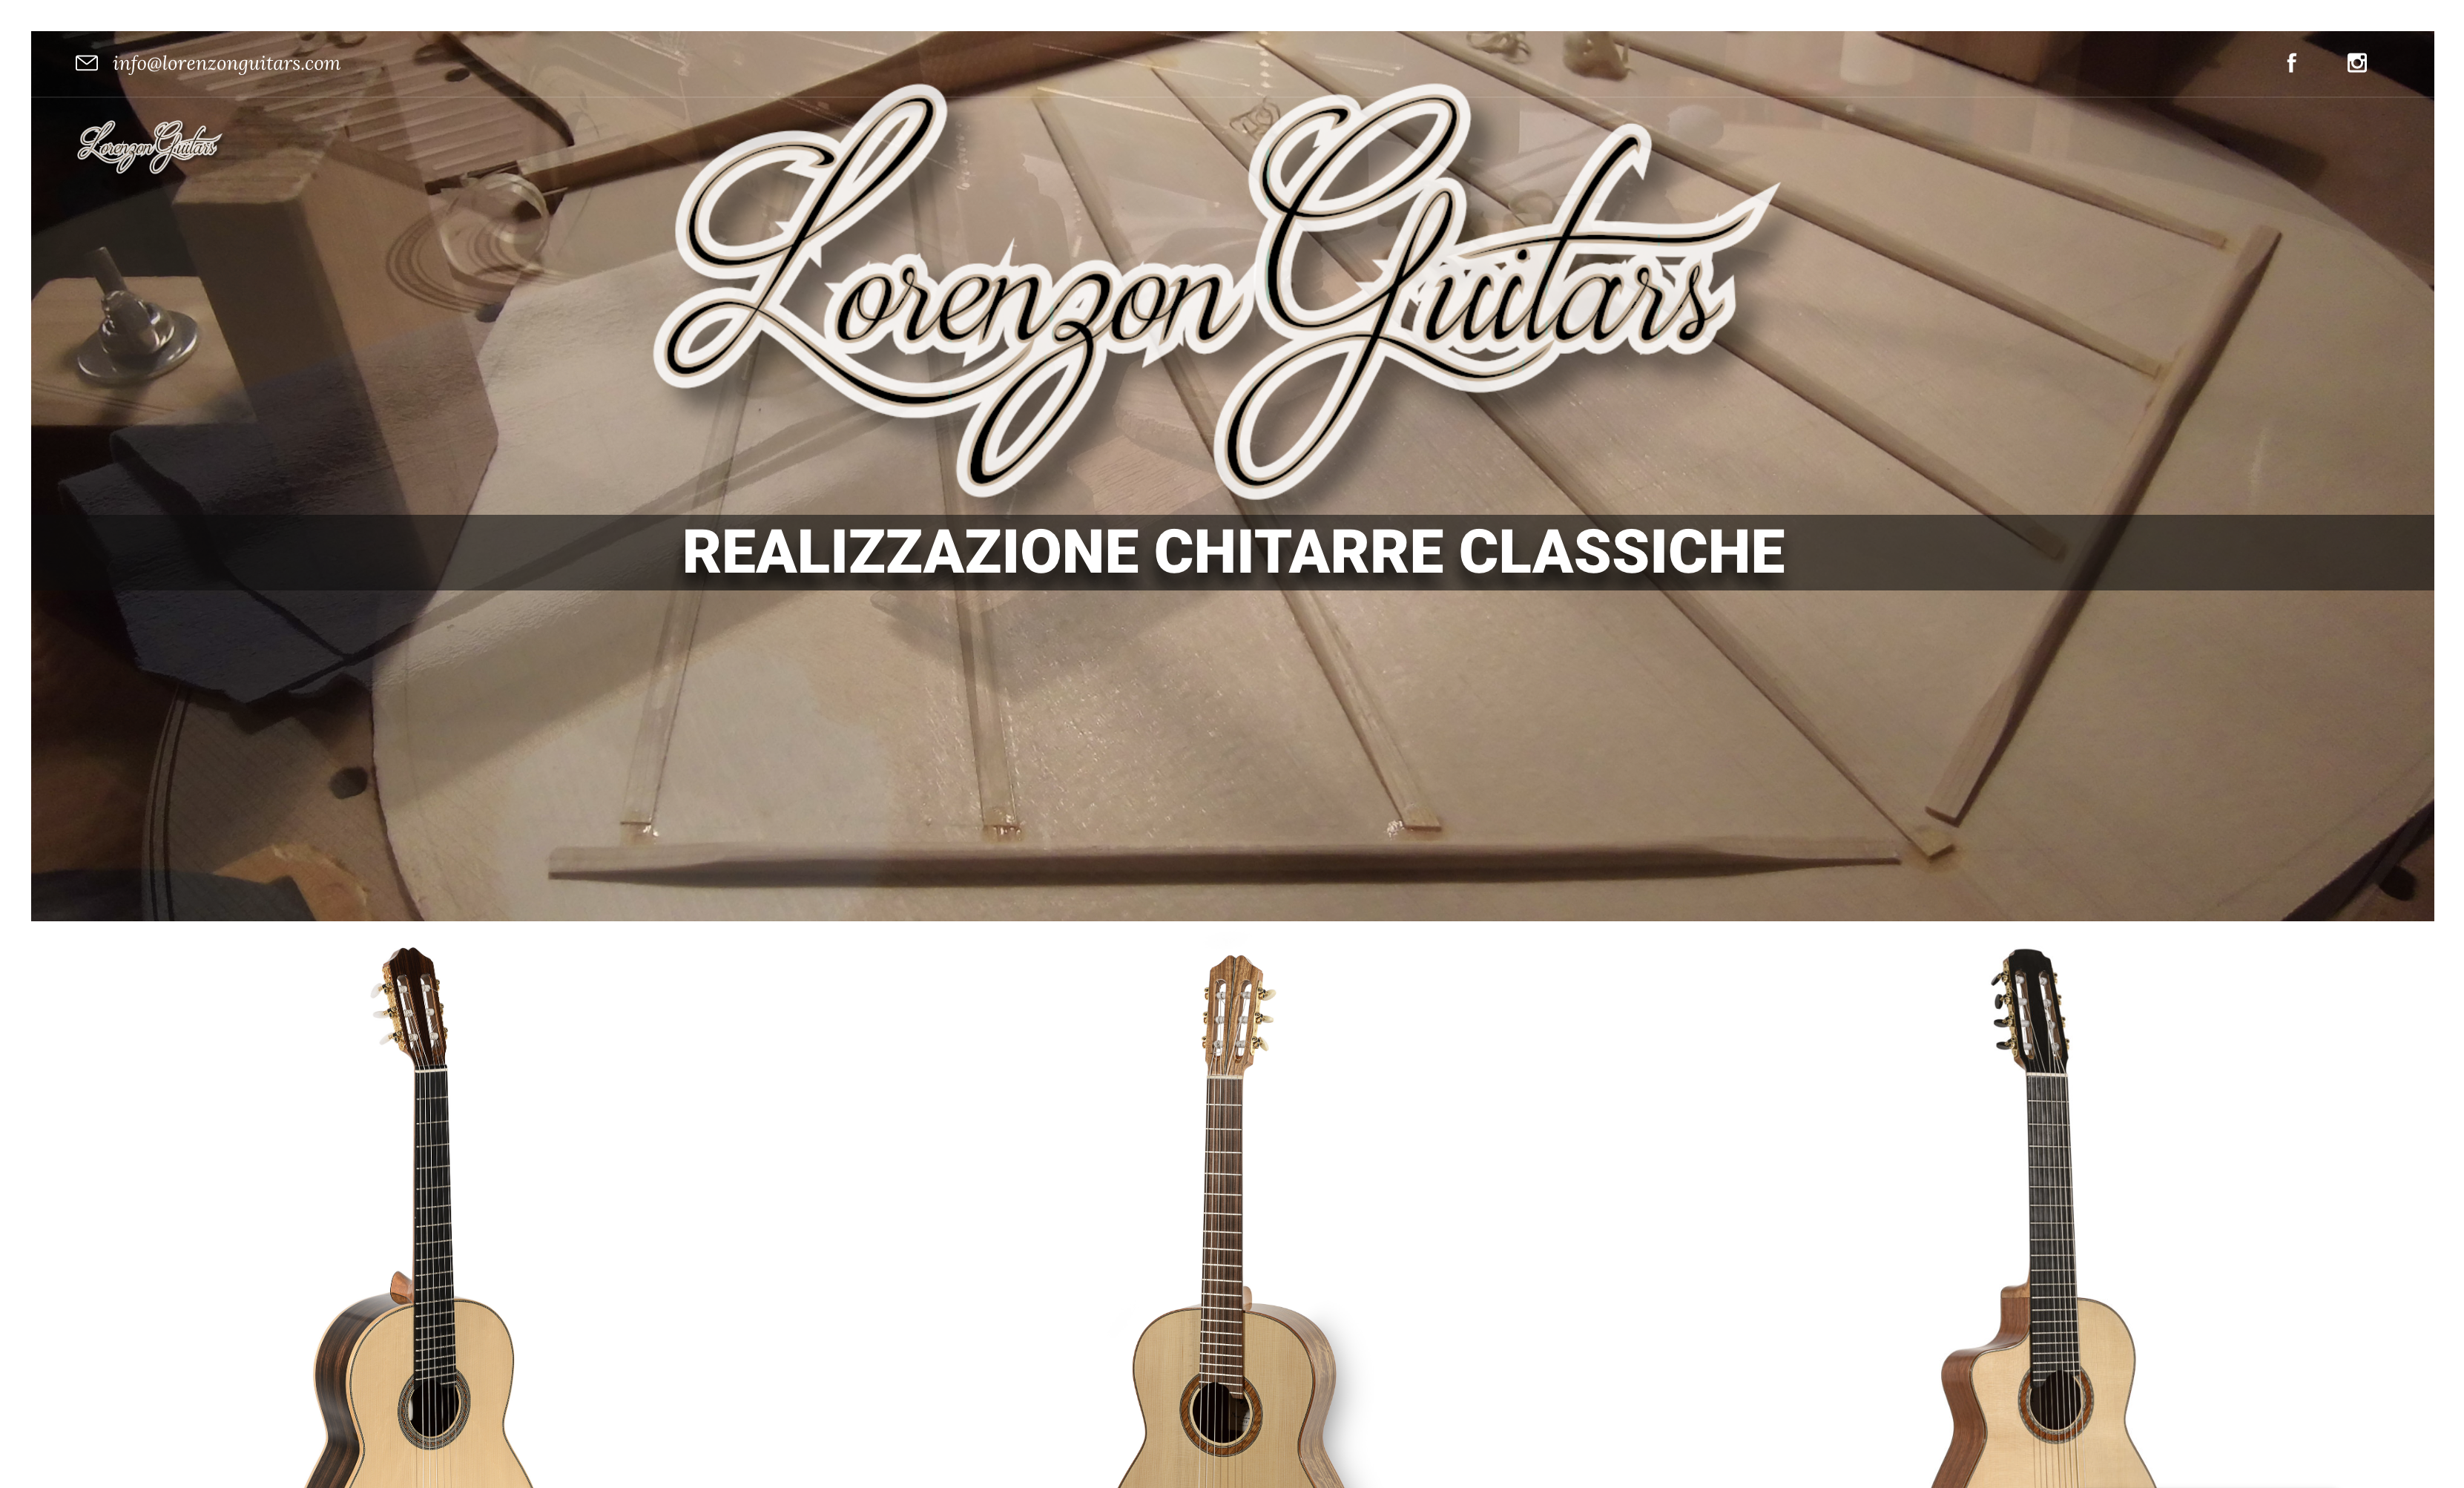 Lorenzon Guitars